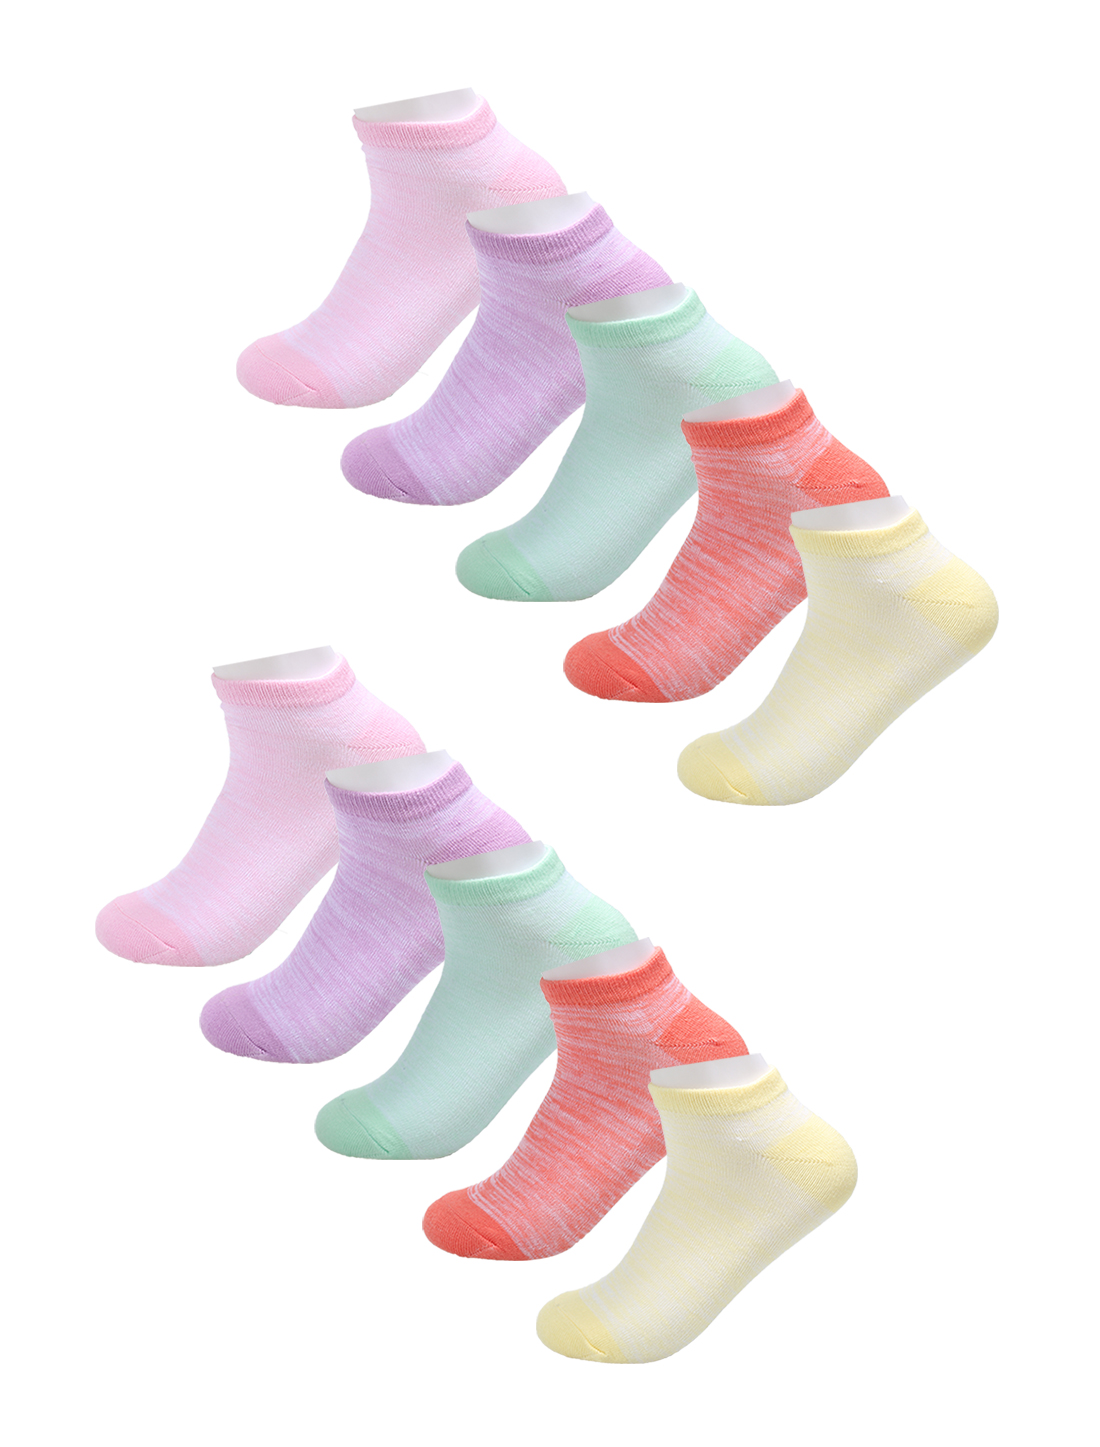 Women Contrast Color Cotton Breathable Boat Socks 10 Pack 7-9 Assorted